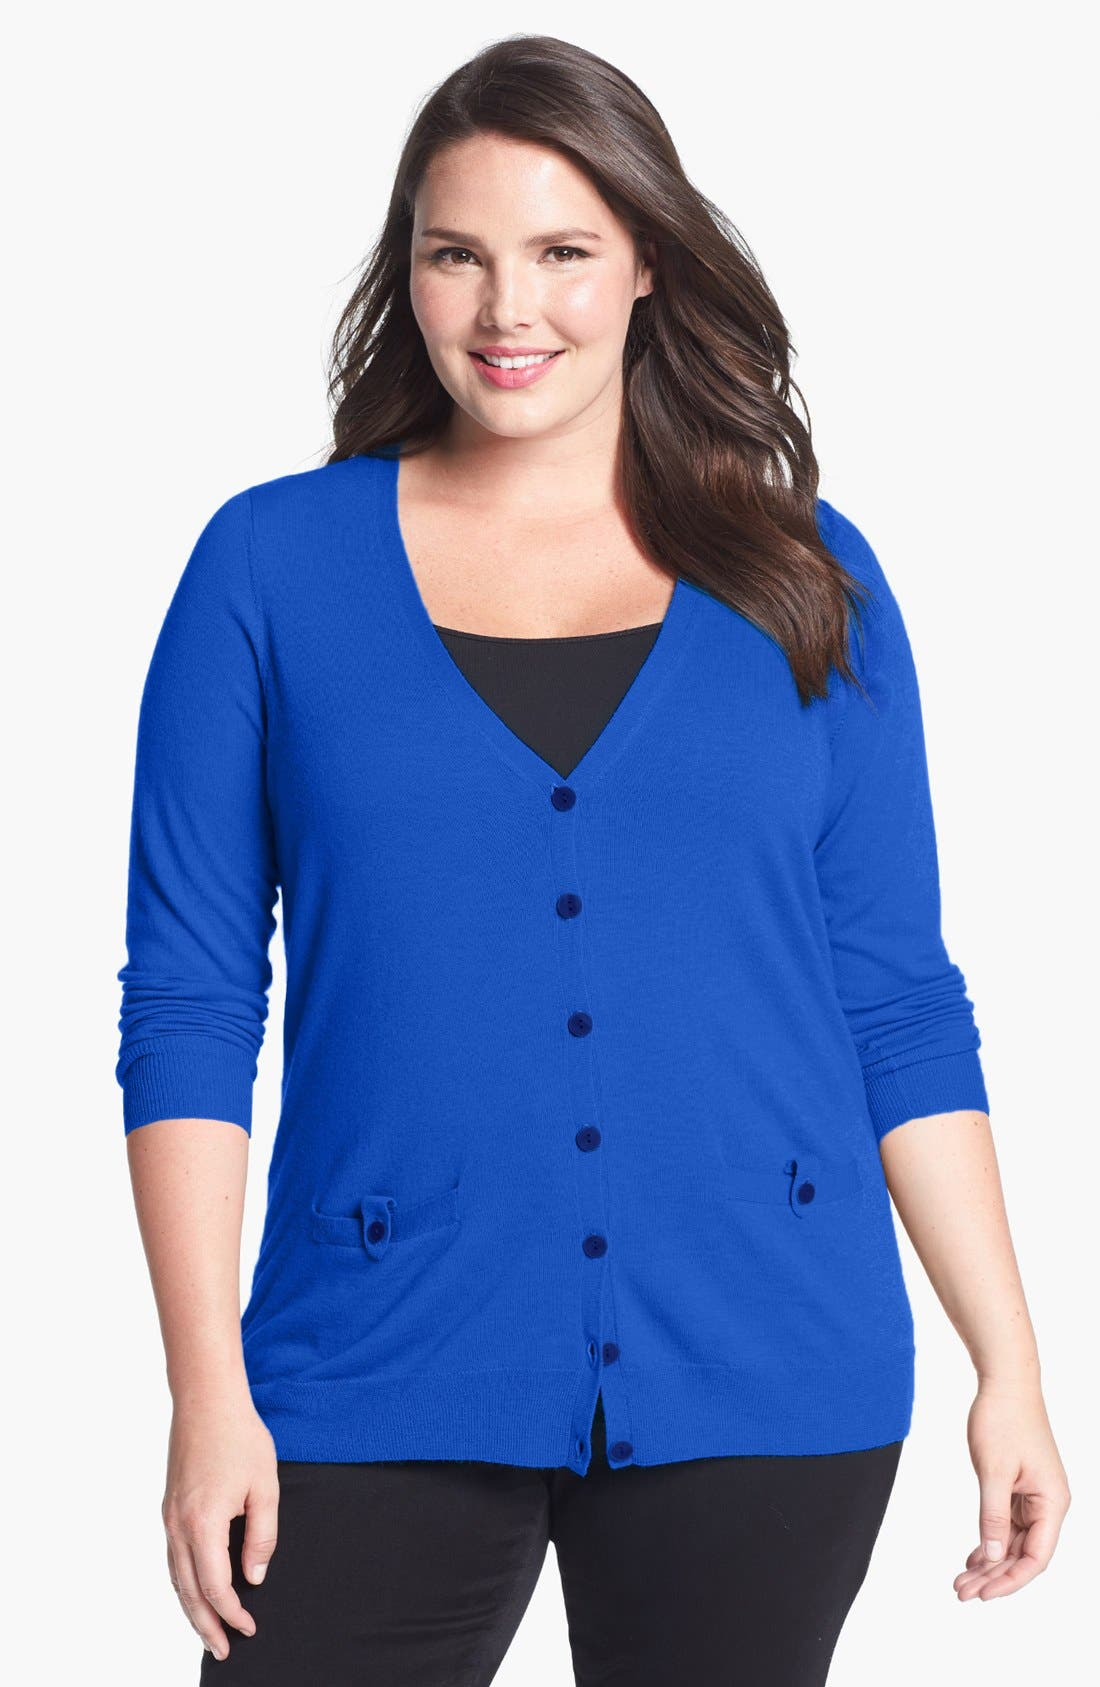 Alternate Image 1 Selected - Sejour 'Fine Dine' Merino Wool Cardigan (Plus Size)